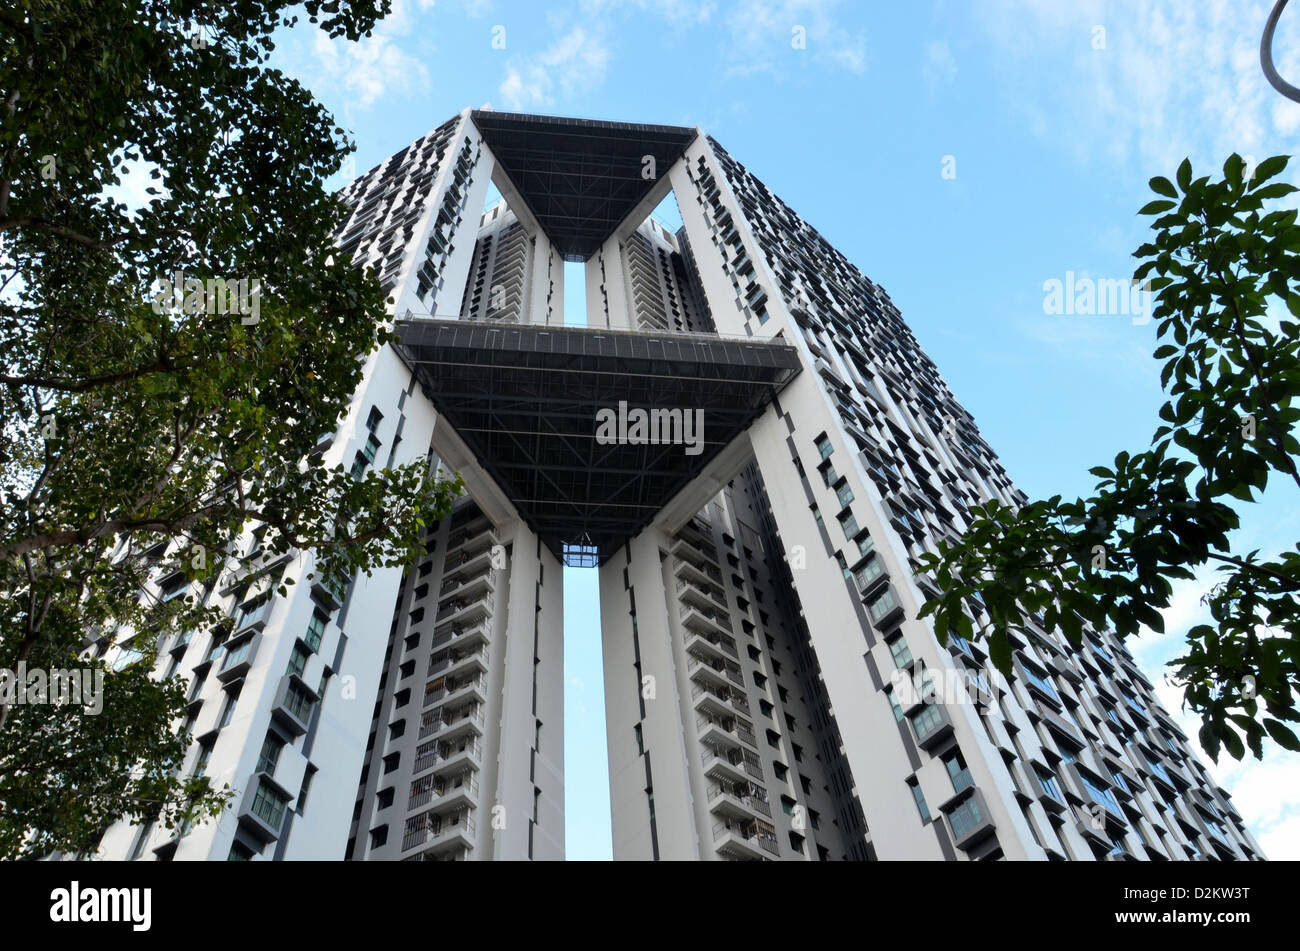 An imposing view of a modern high rise apartment building ...